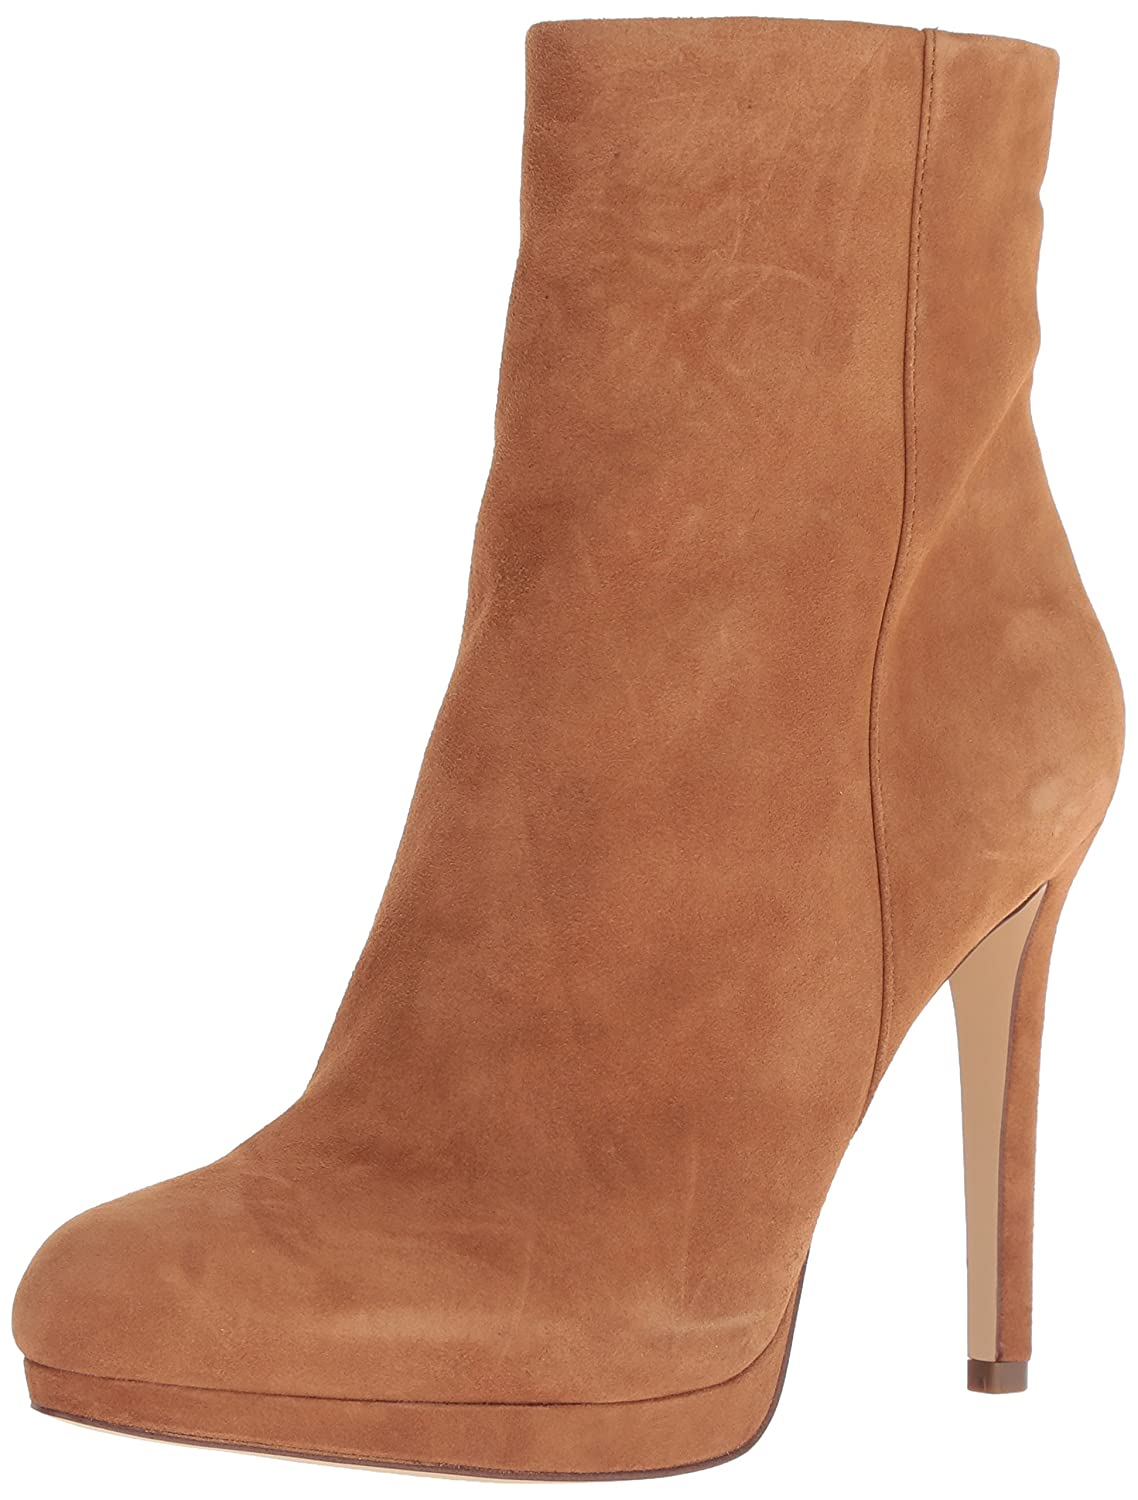 Nine West Women's Quanette Suede Ankle Boot B0781ZBLDK 12 B(M) US|Dark Natural_260